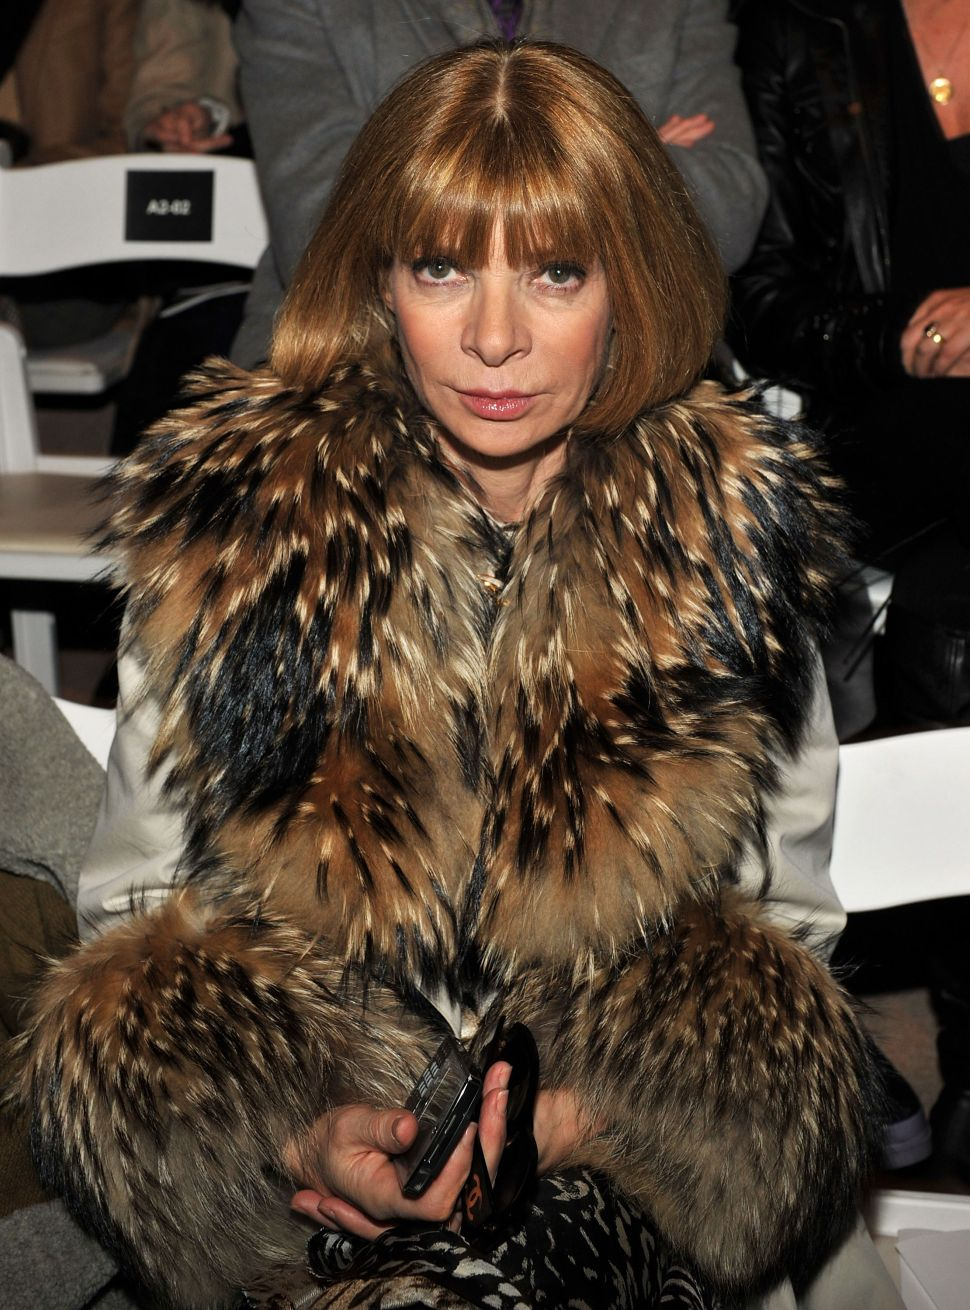 Afternoon Bulletin: Anna Wintour Fundraises to Bring the DNC to Brooklyn and More